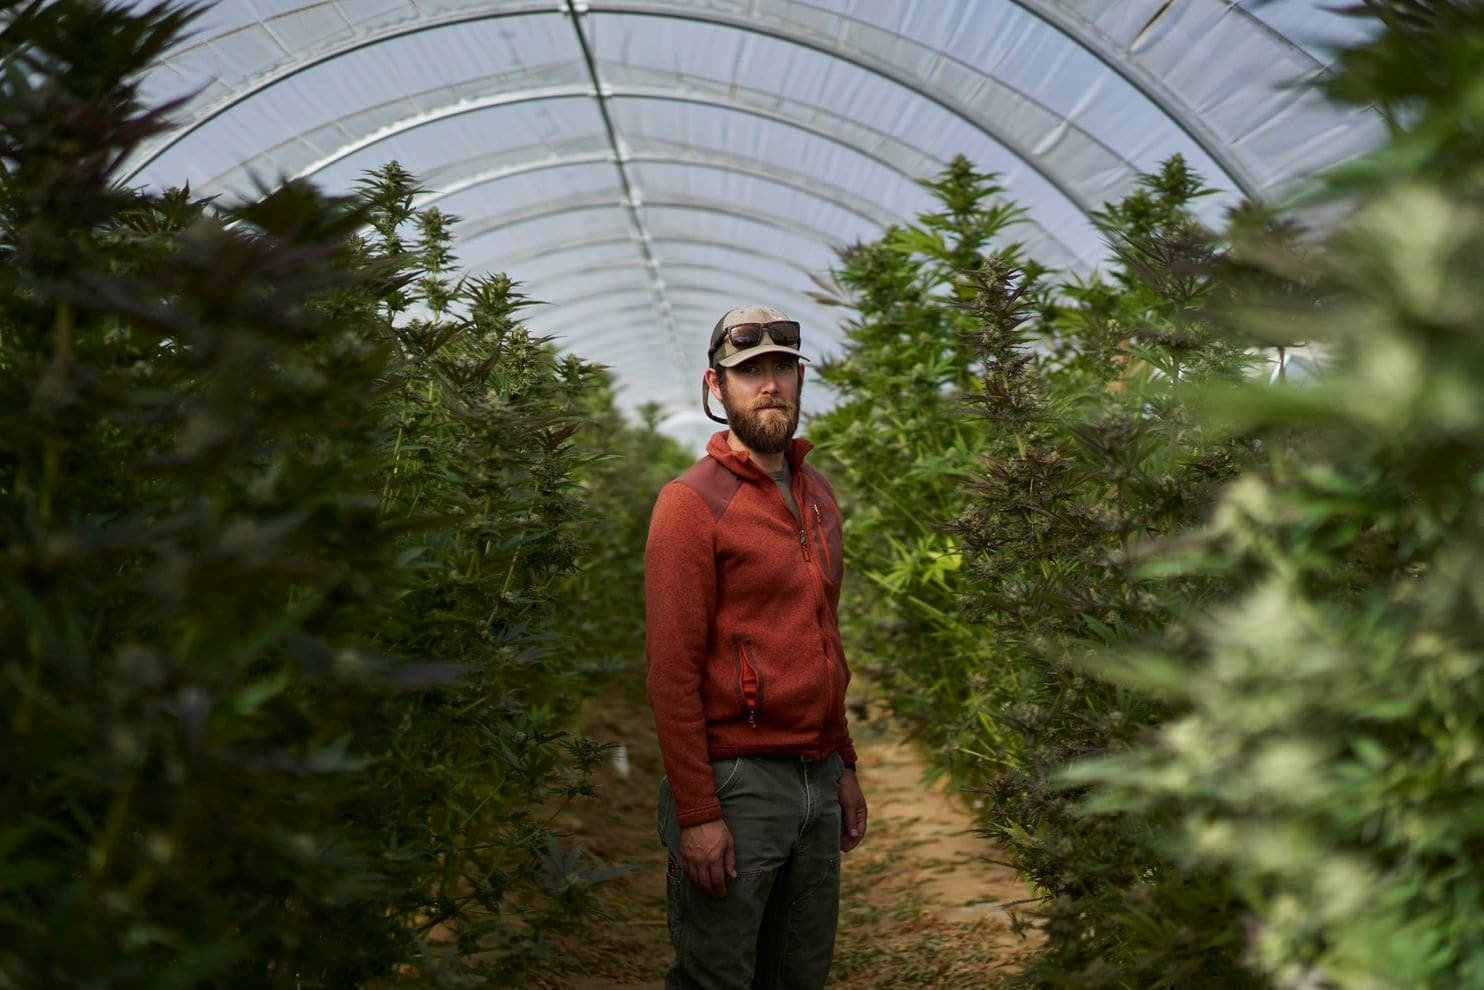 Marijuana is emerging among California's vineyards